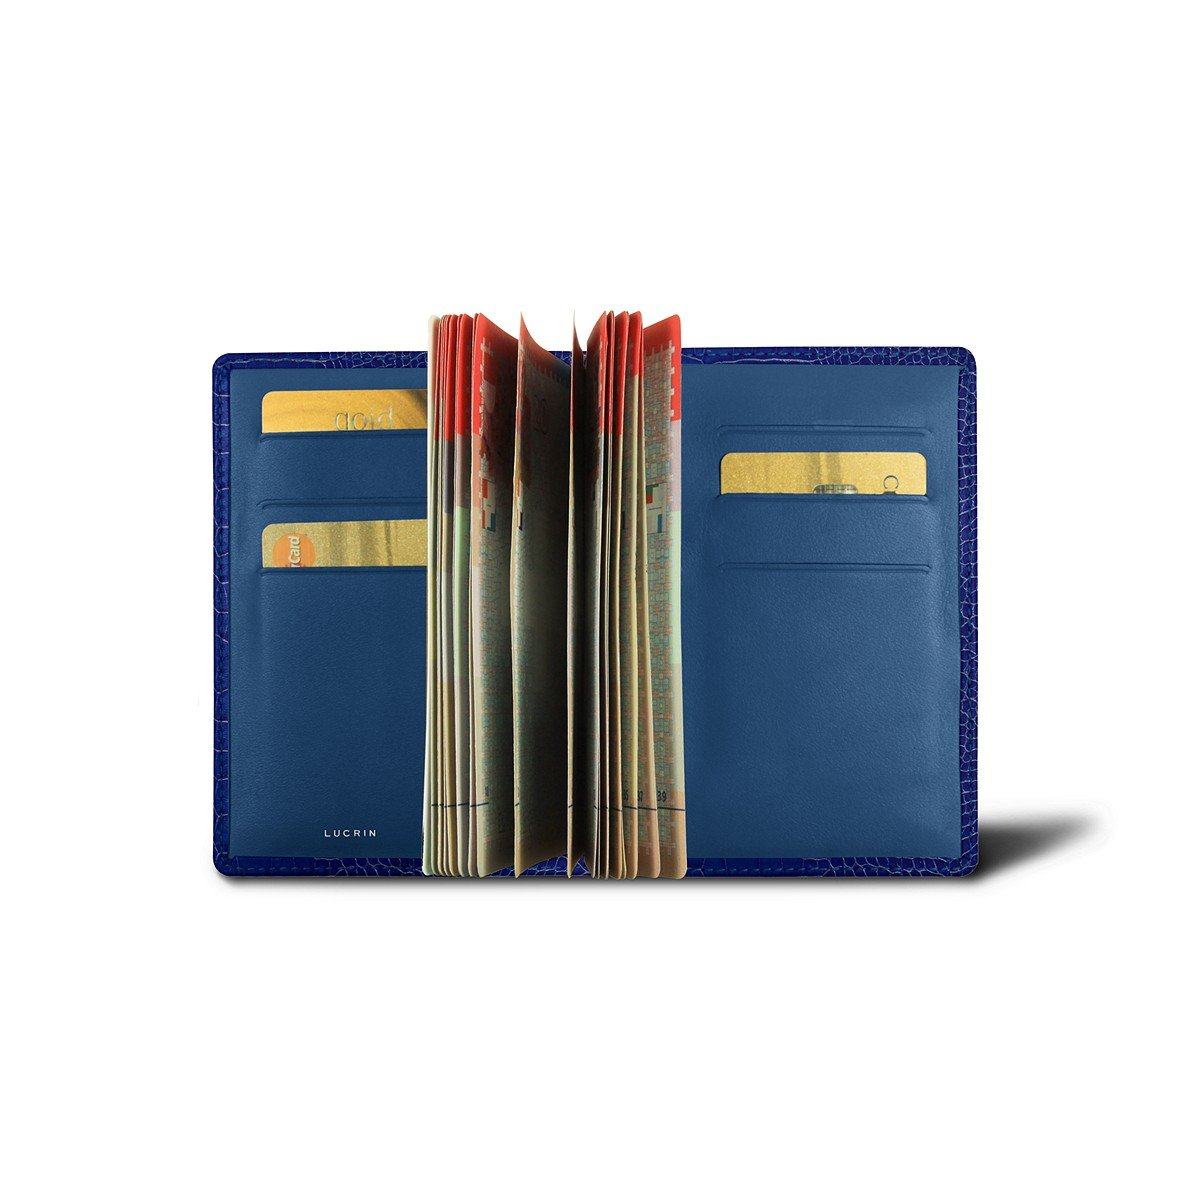 Lucrin - Luxury Passport Holder - Royal Blue - Crocodile style calfskin by Lucrin